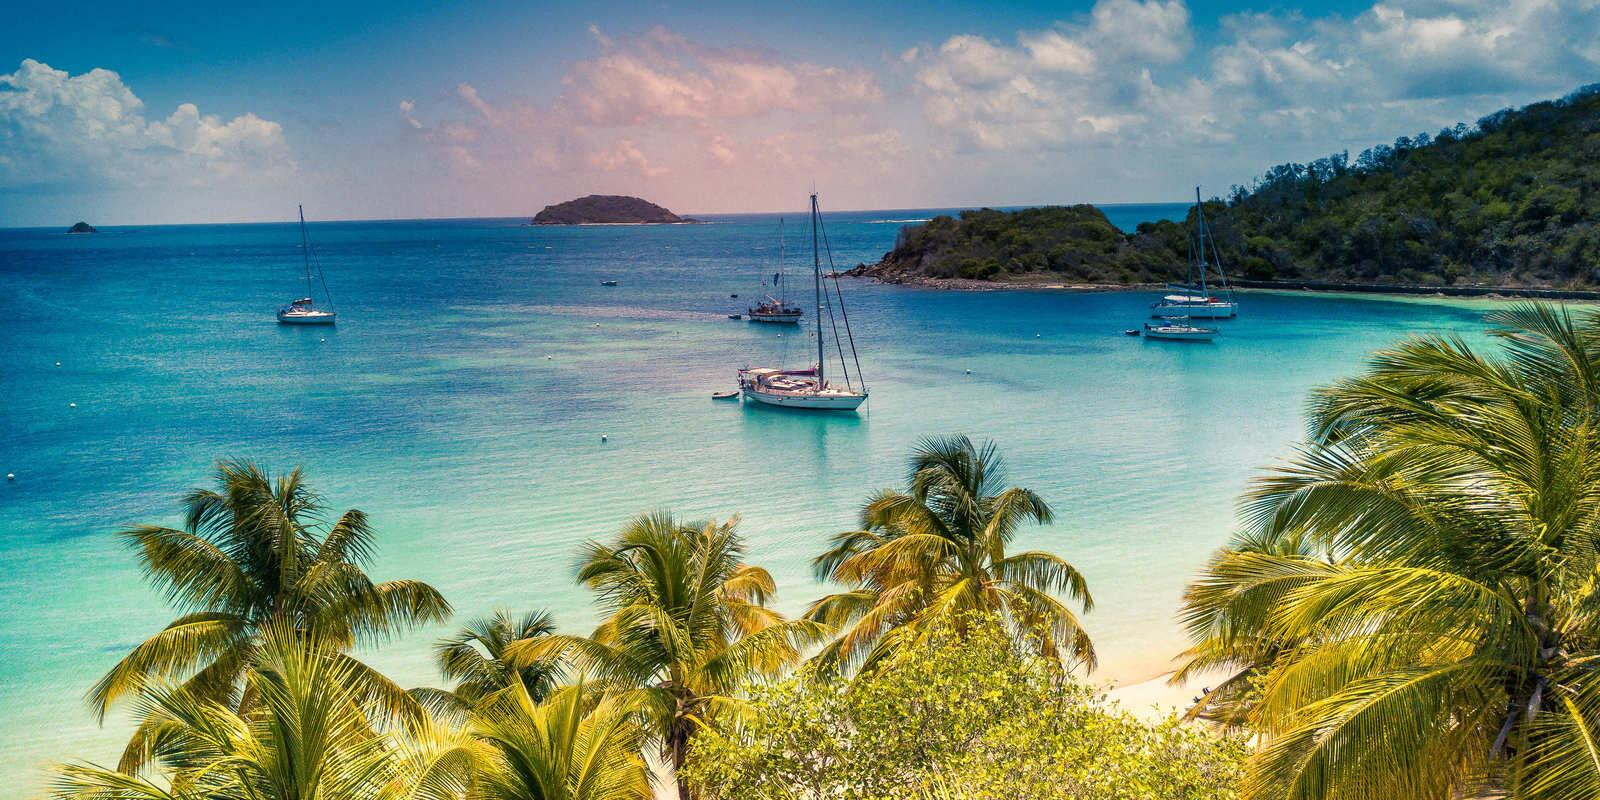 Sailing & Hiking in the Rainforest from St. Lucia